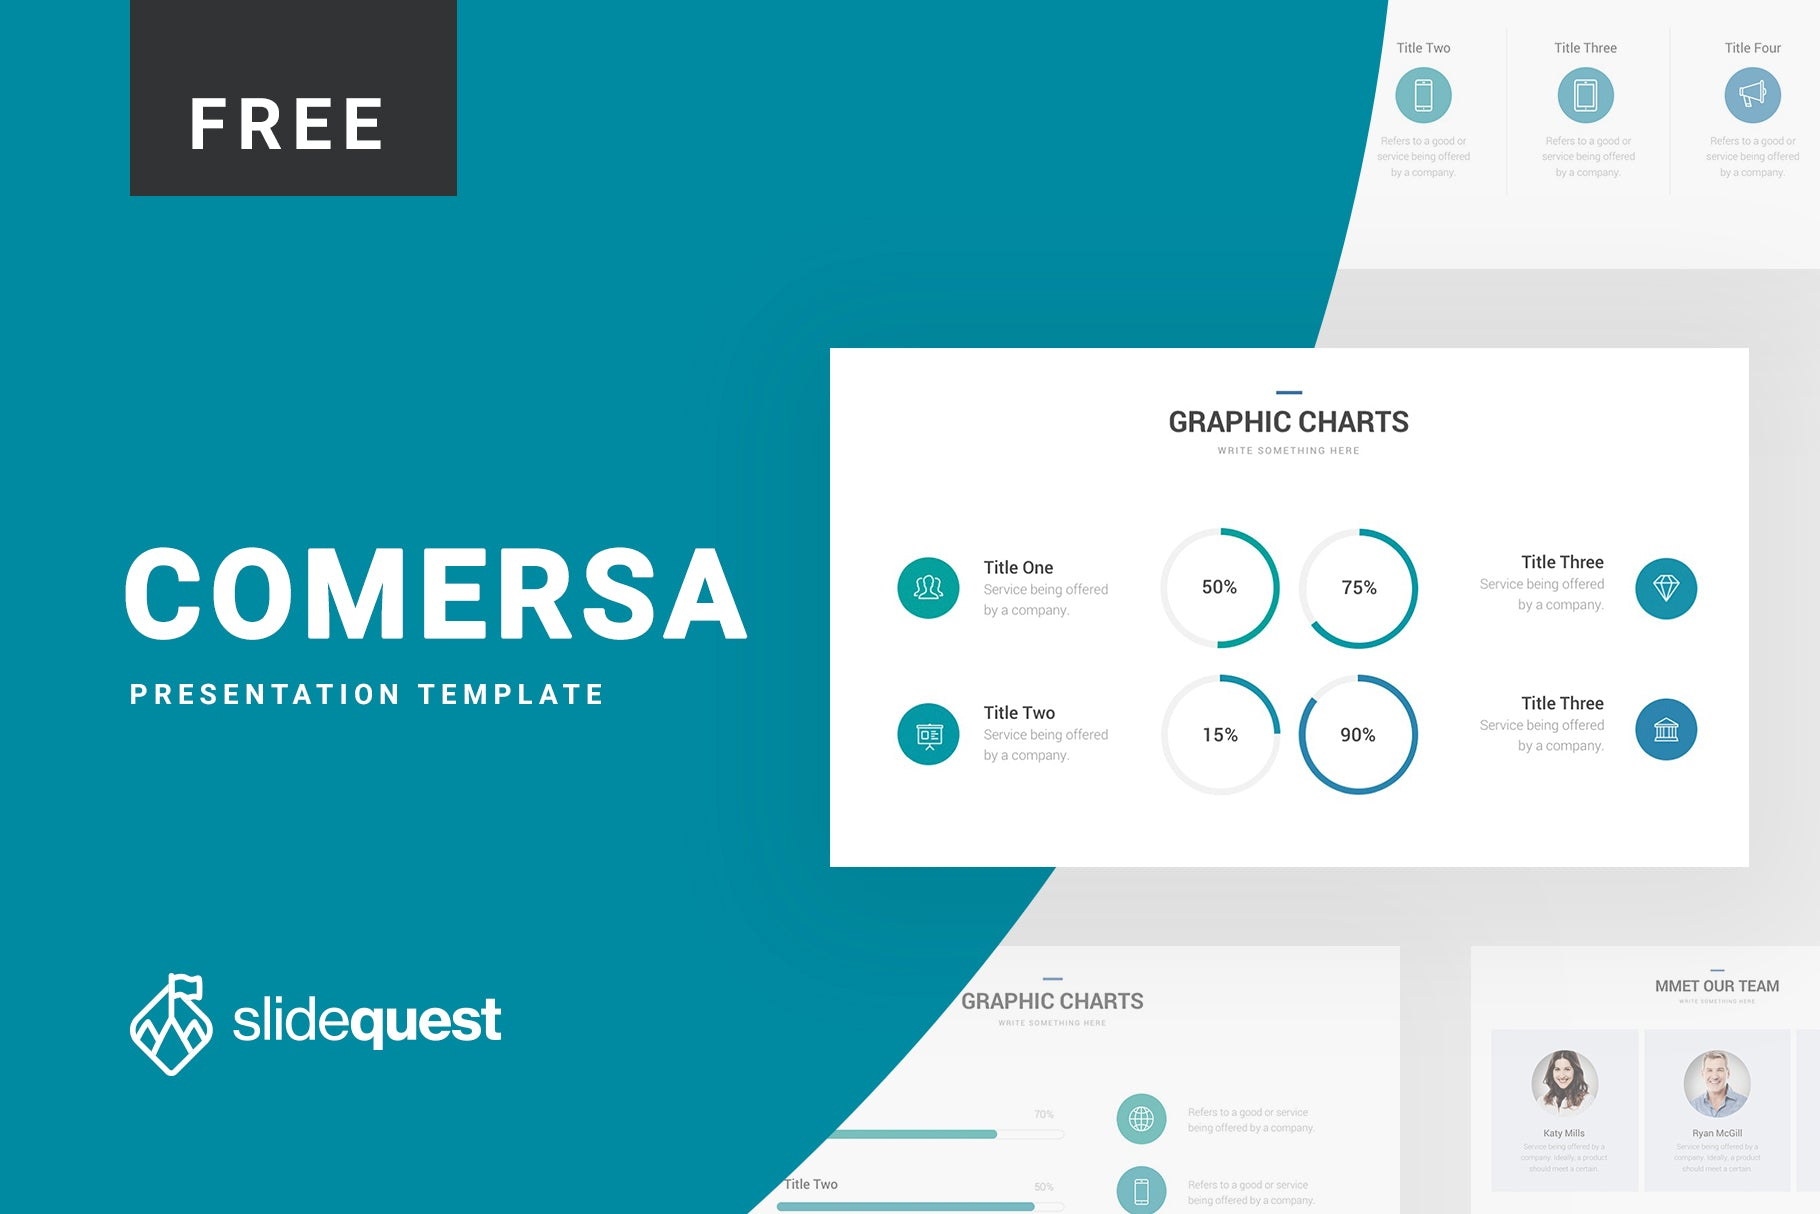 best free presentation templates 2019  u2013 slidequest